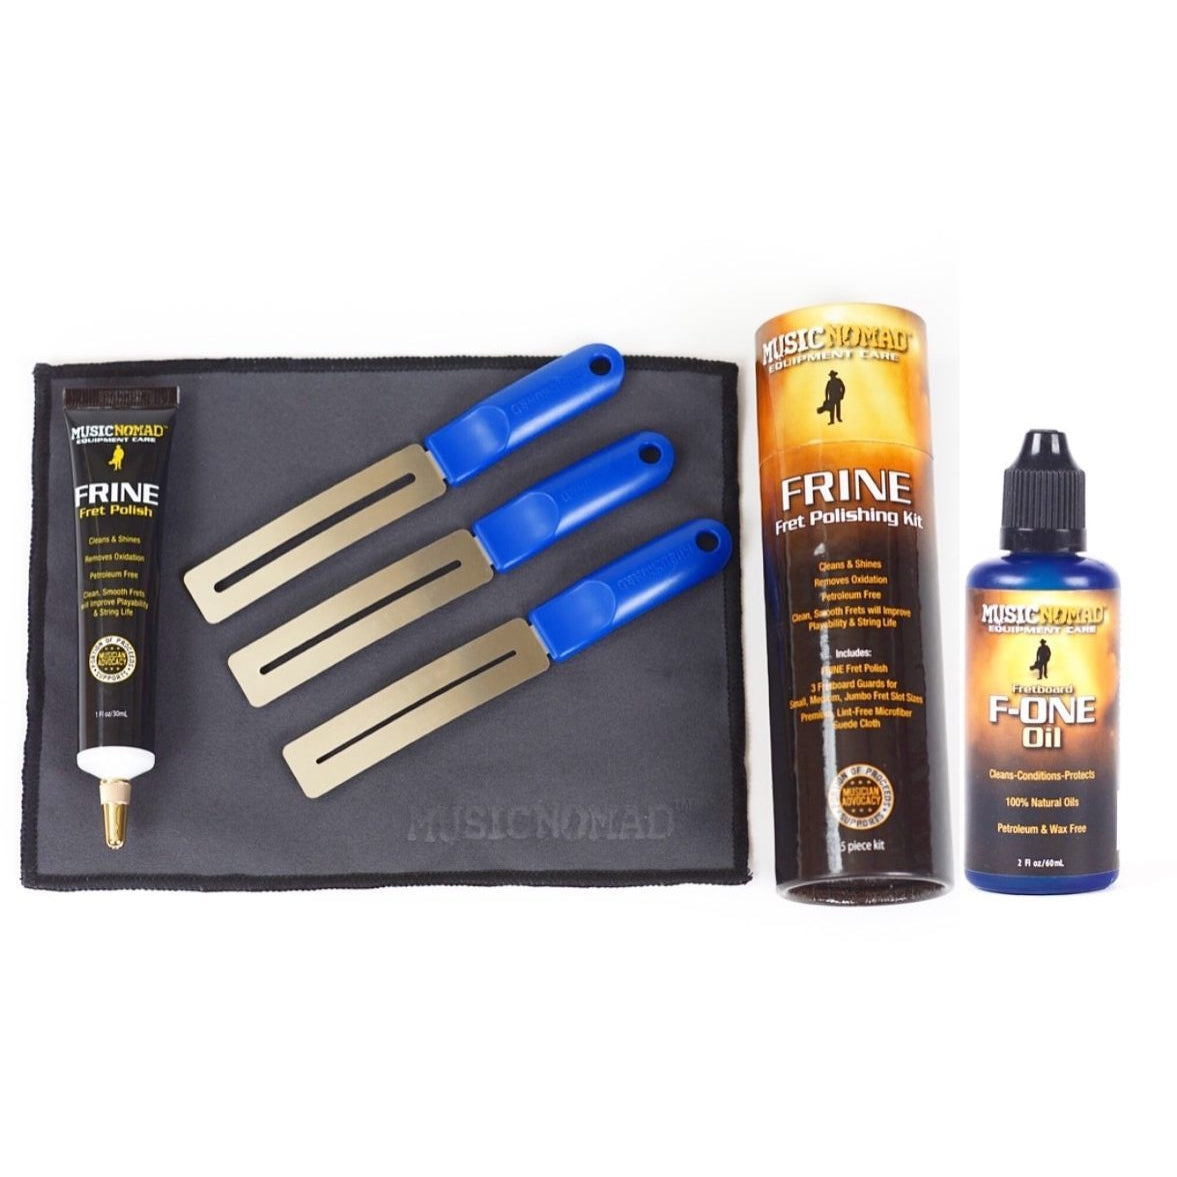 Music Nomad MN144 Total Fretboard Care Kit